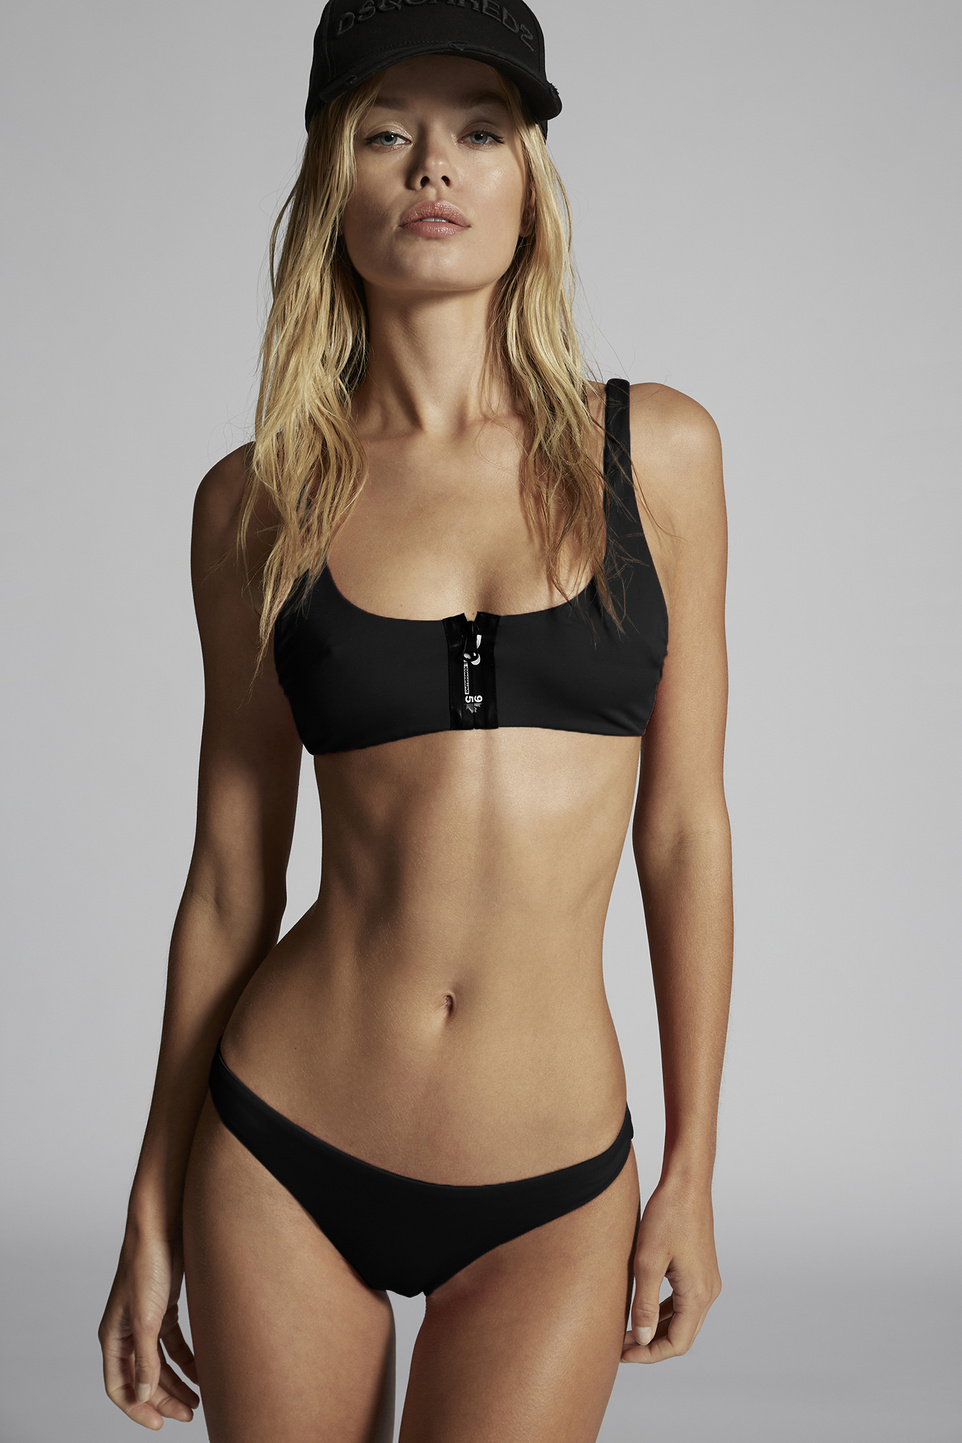 D2Line Scoop Bikini Top by Dsquared2, available on dsquared2.com for $210 Frida Aasen Top Exact Product